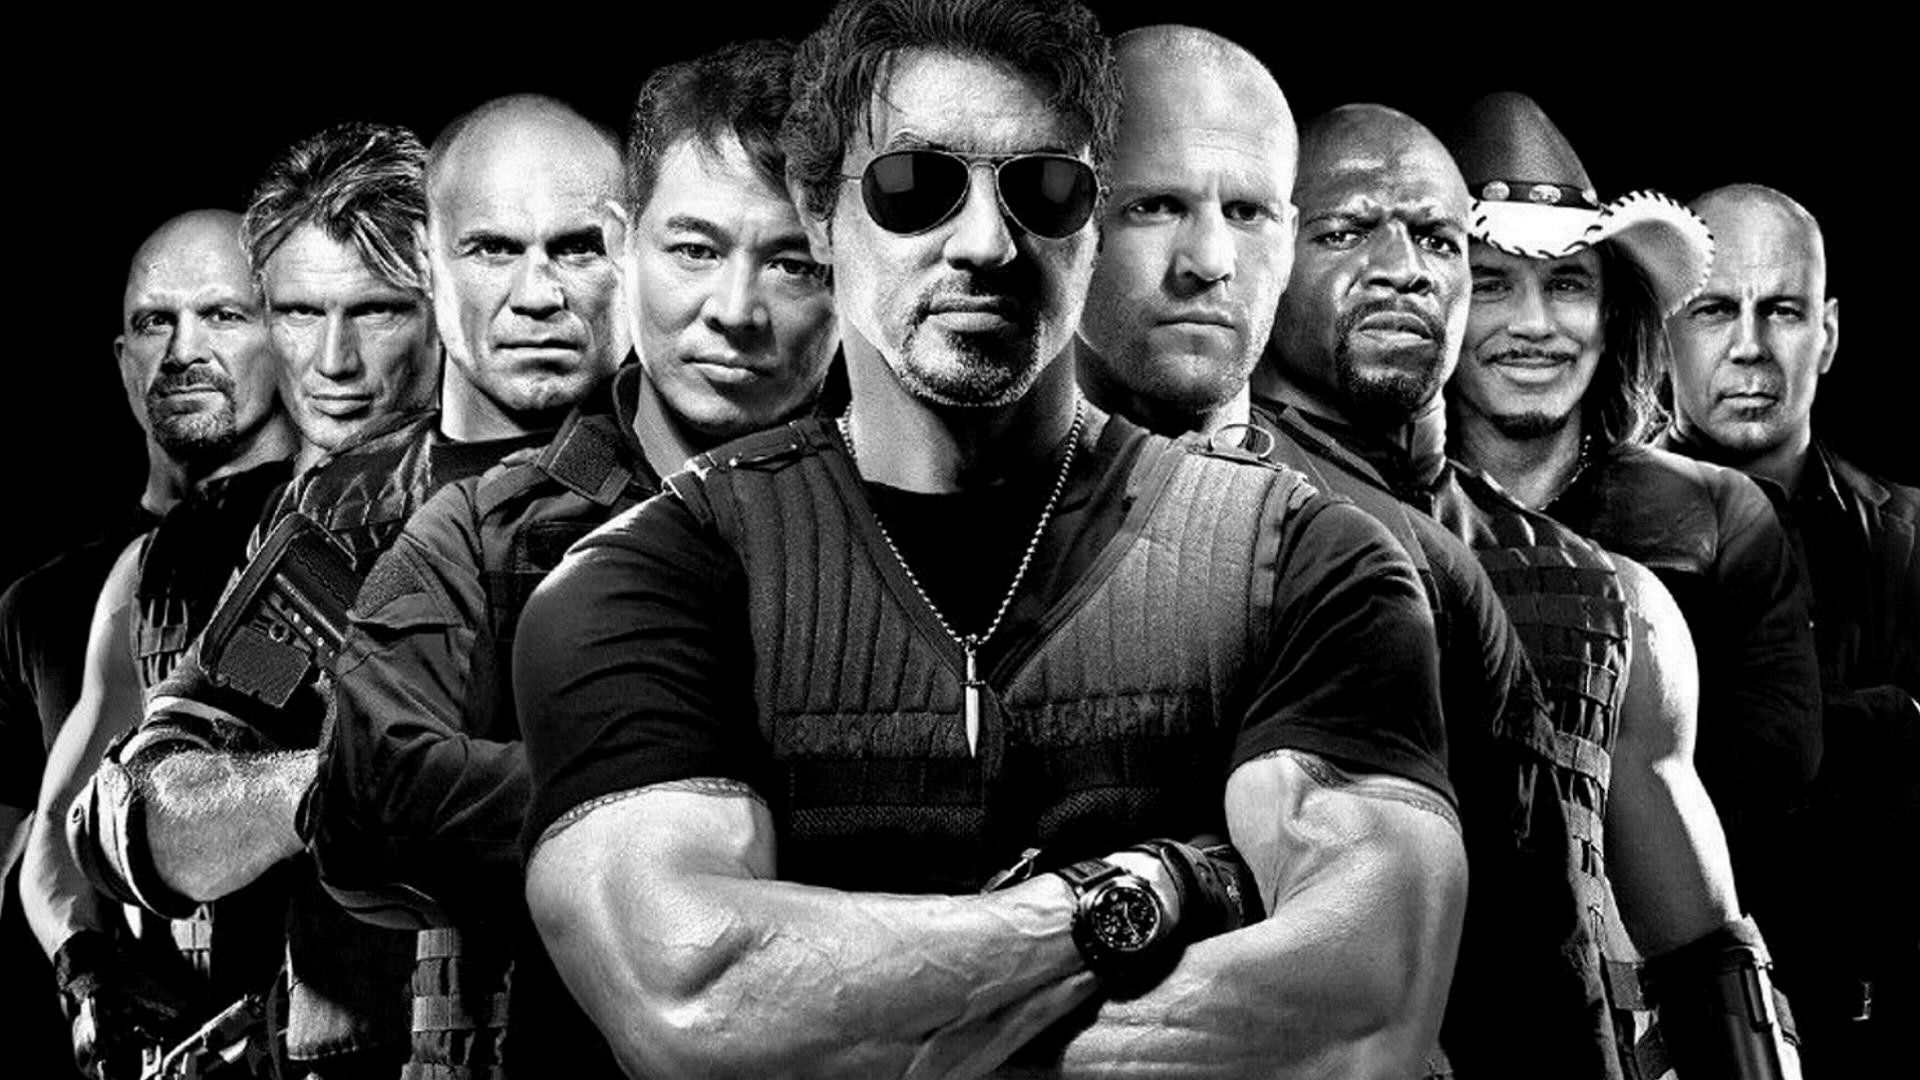 the expendables wallpapers widescreen full hd 1080p | a | pinterest